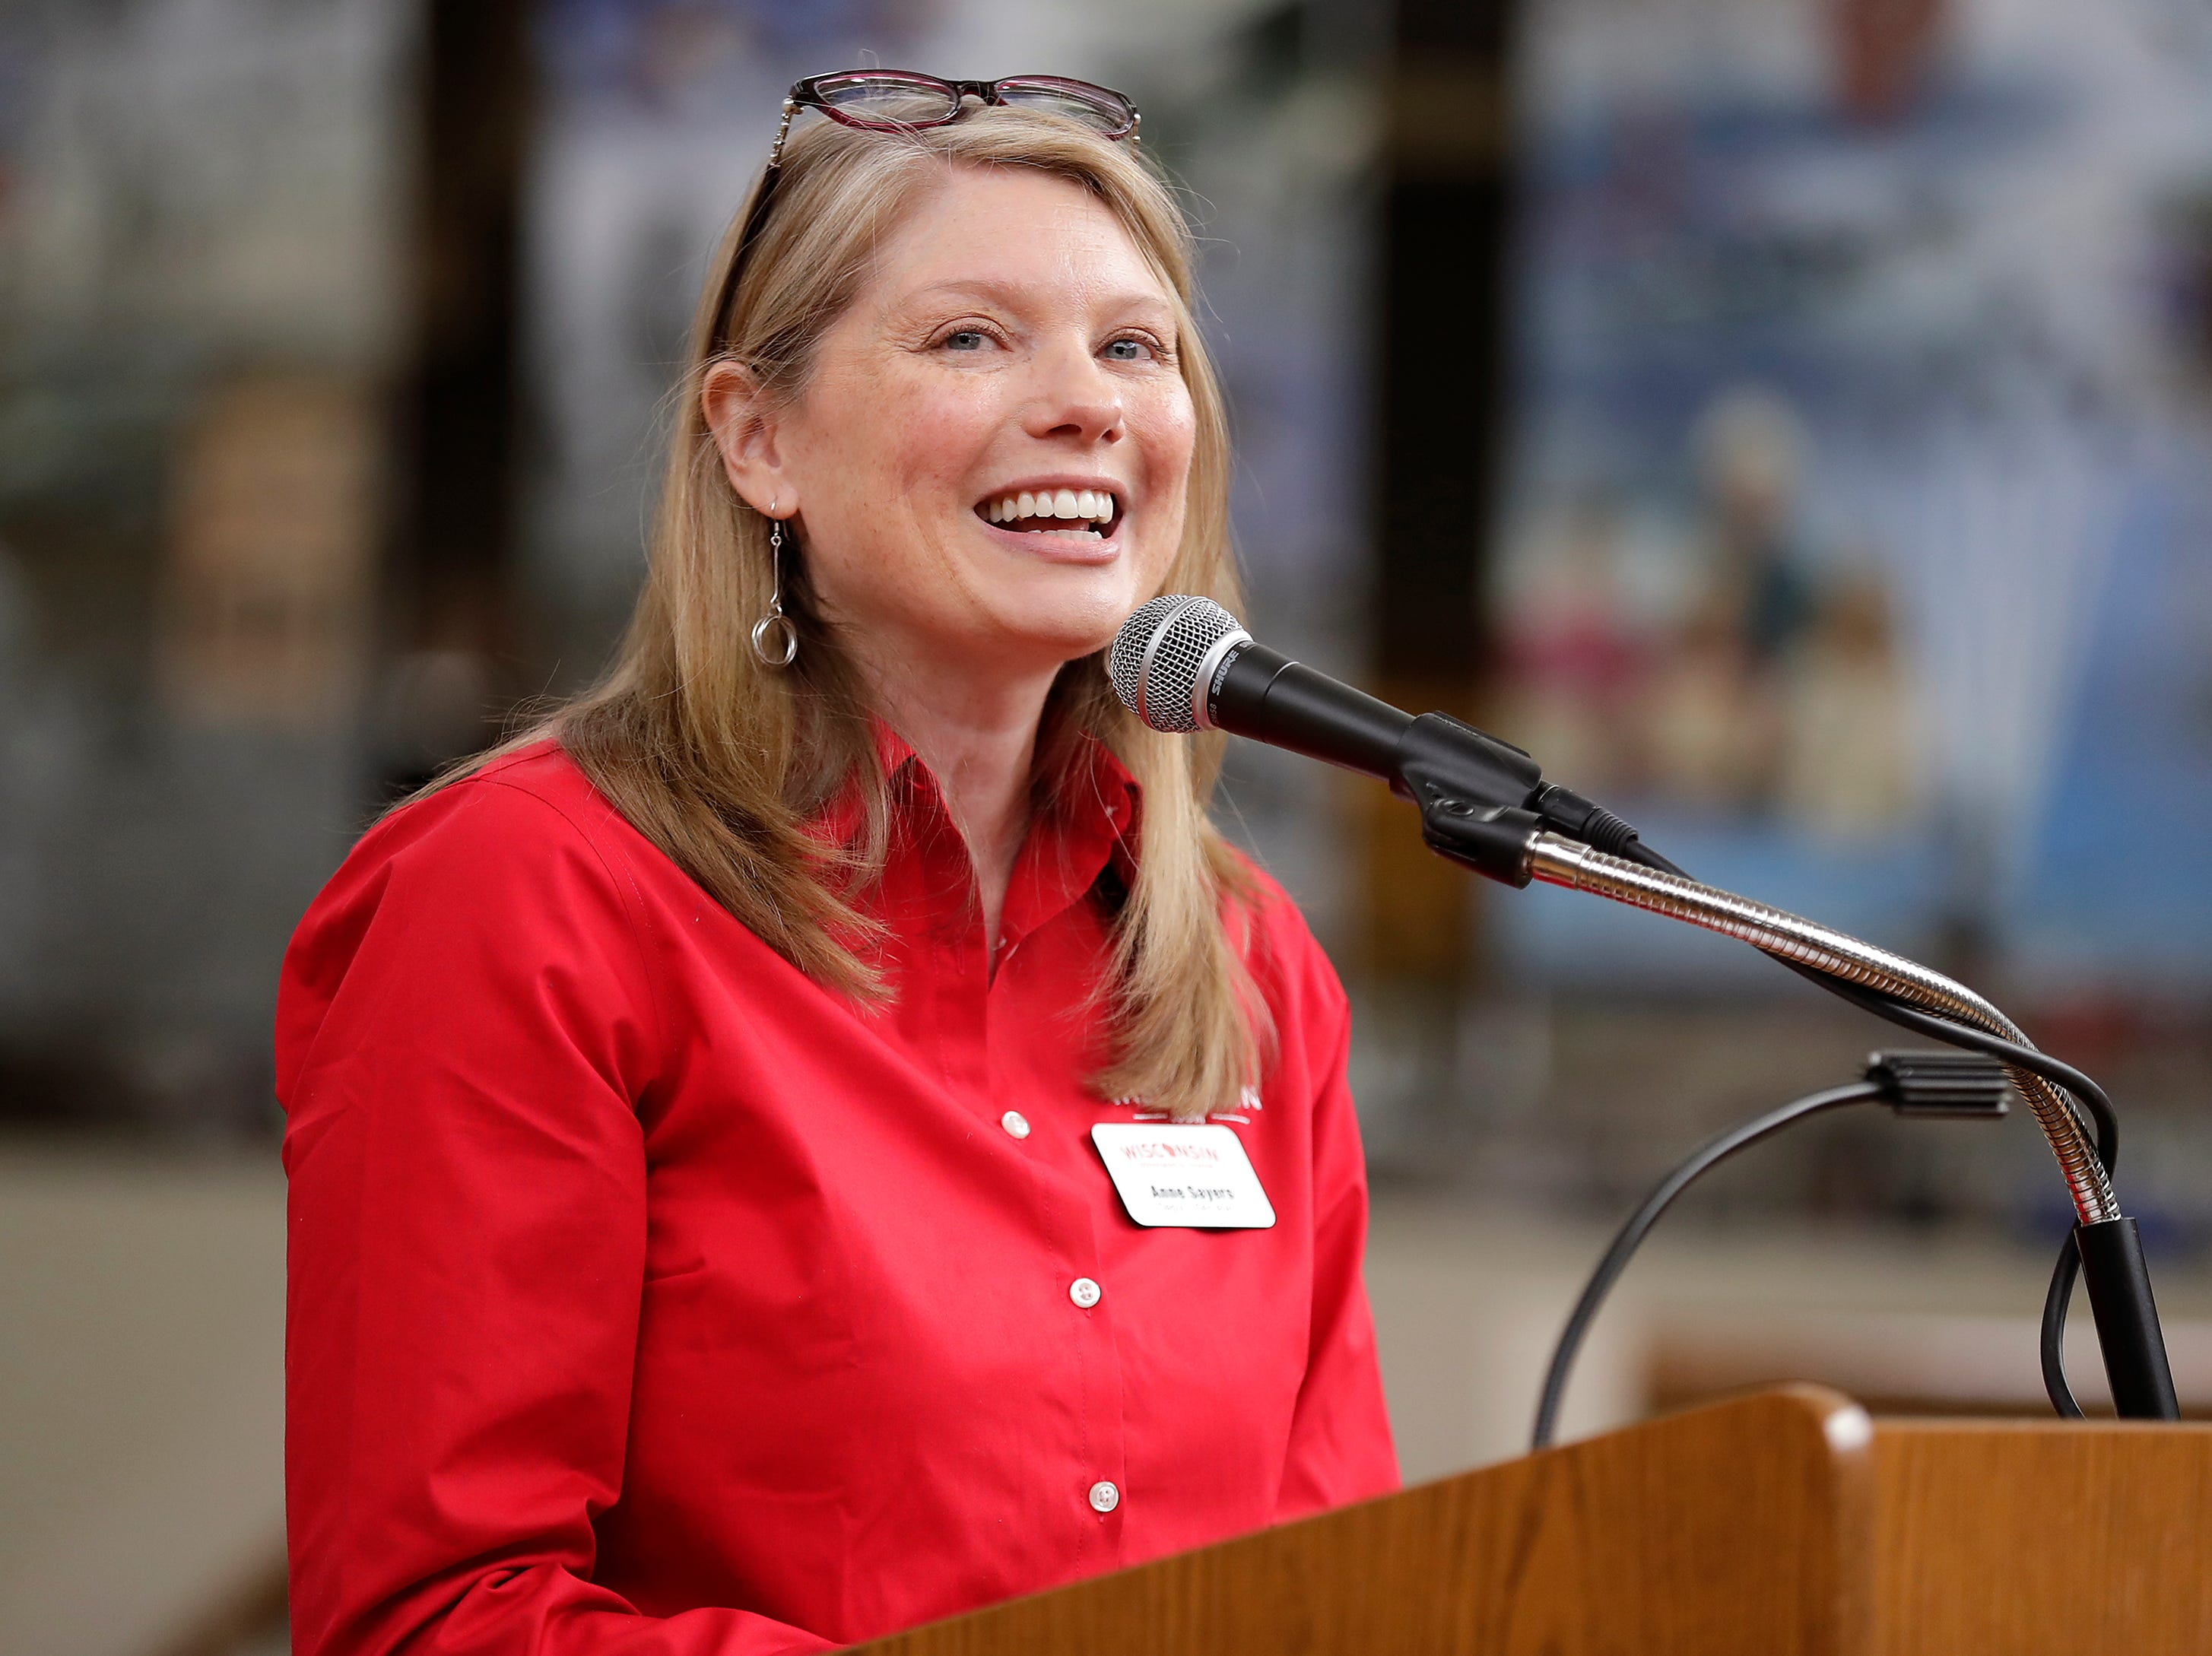 Wisconsin Deputy Secretary of Tourism Anne Sayers speaks during a visit at the EAA Aviation Museum on Monday, May 6, 2019, in Oshkosh, Wis.